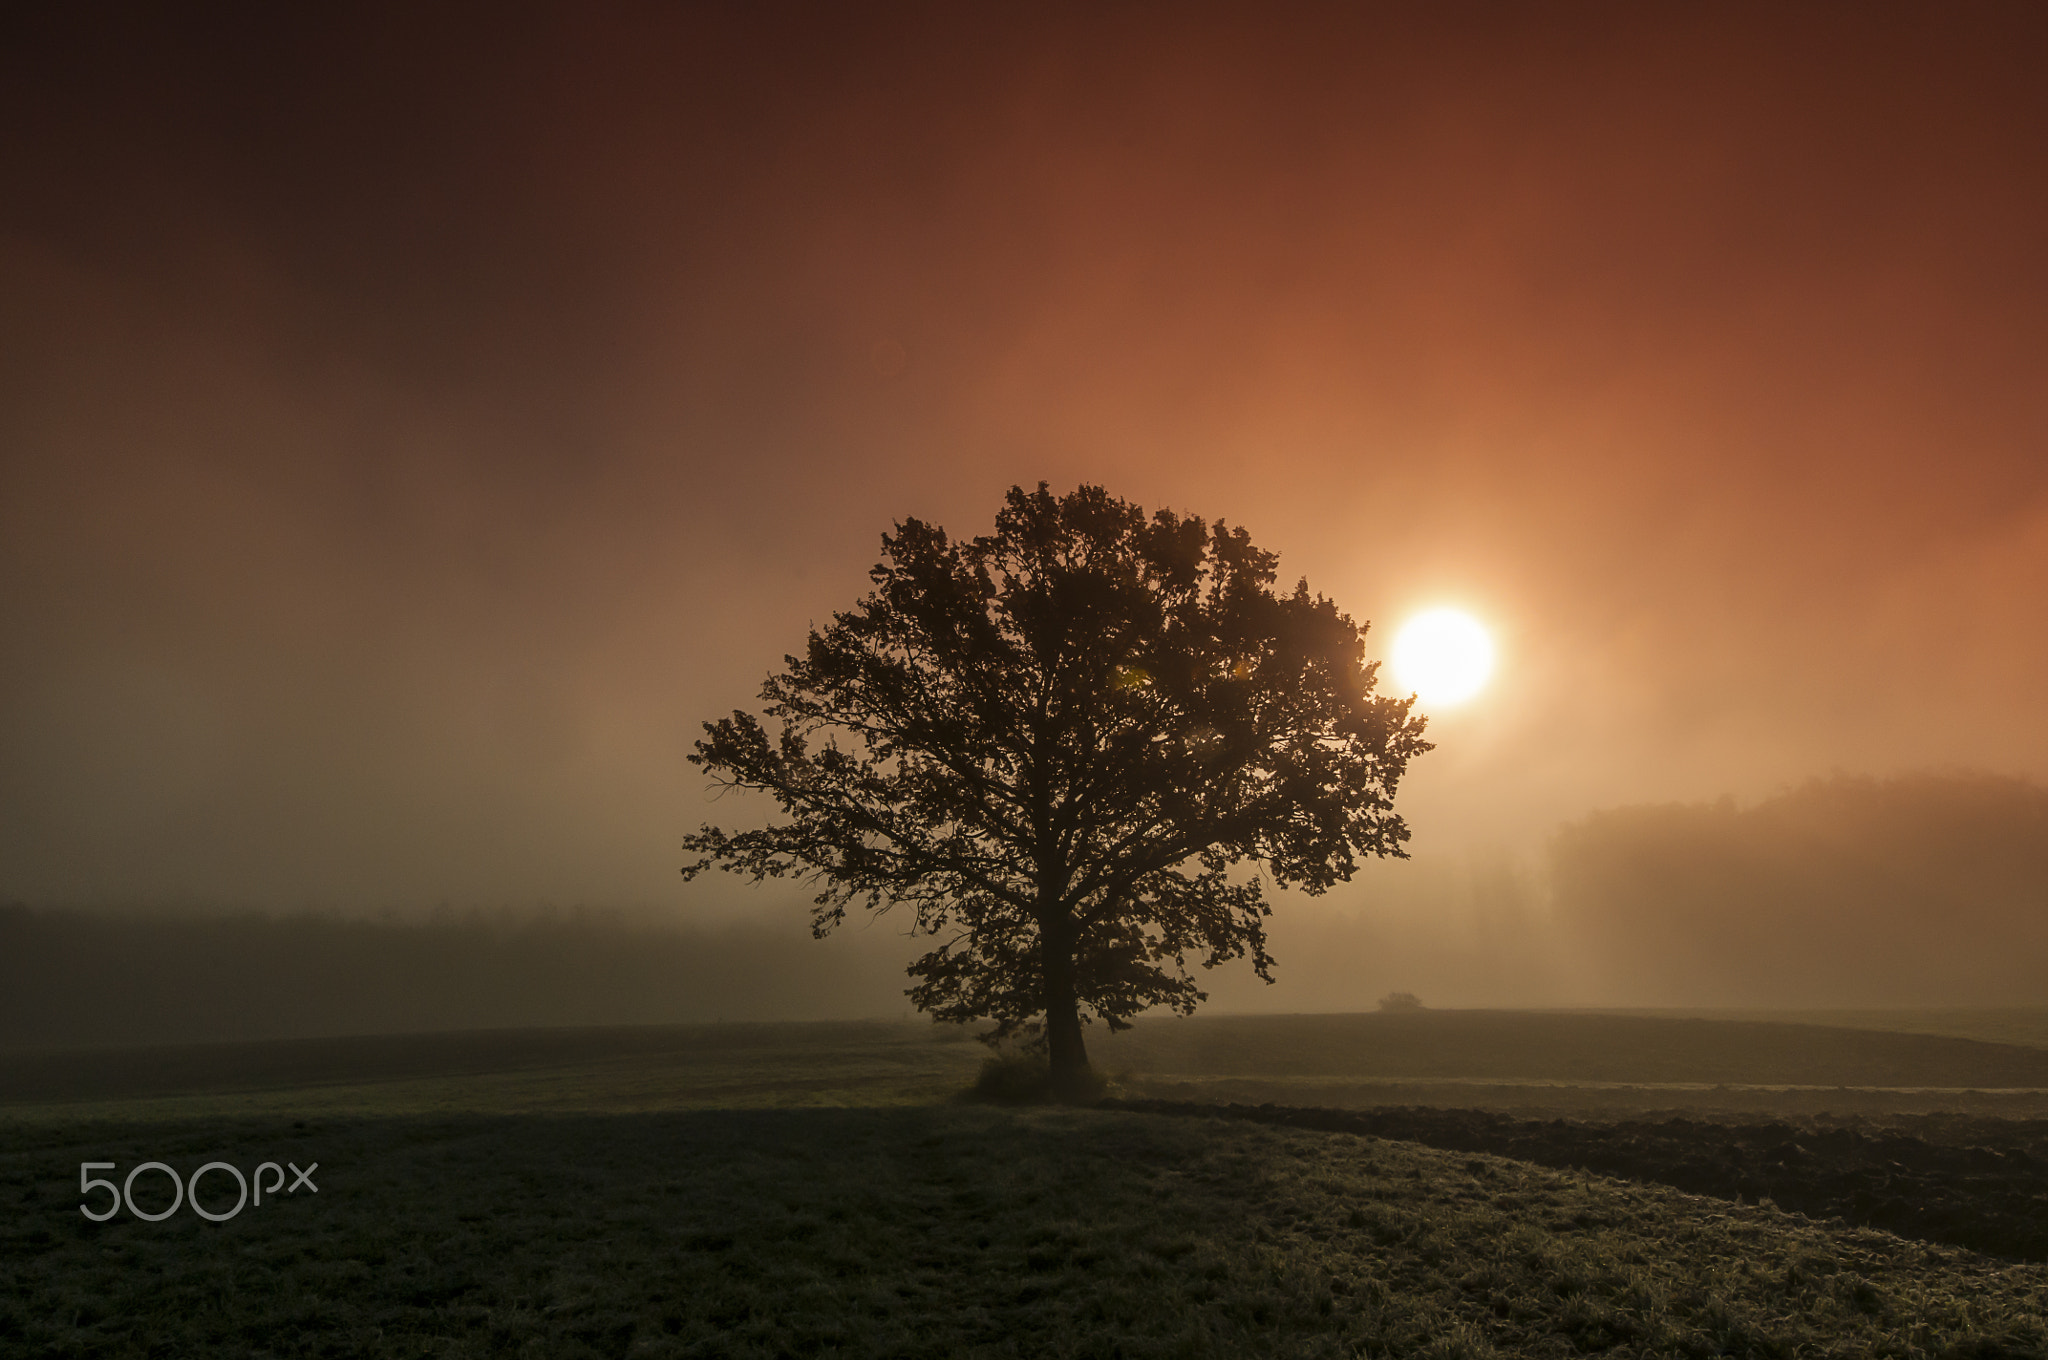 Photograph Eiche im Nebel by Leo Pöcksteiner on 500px